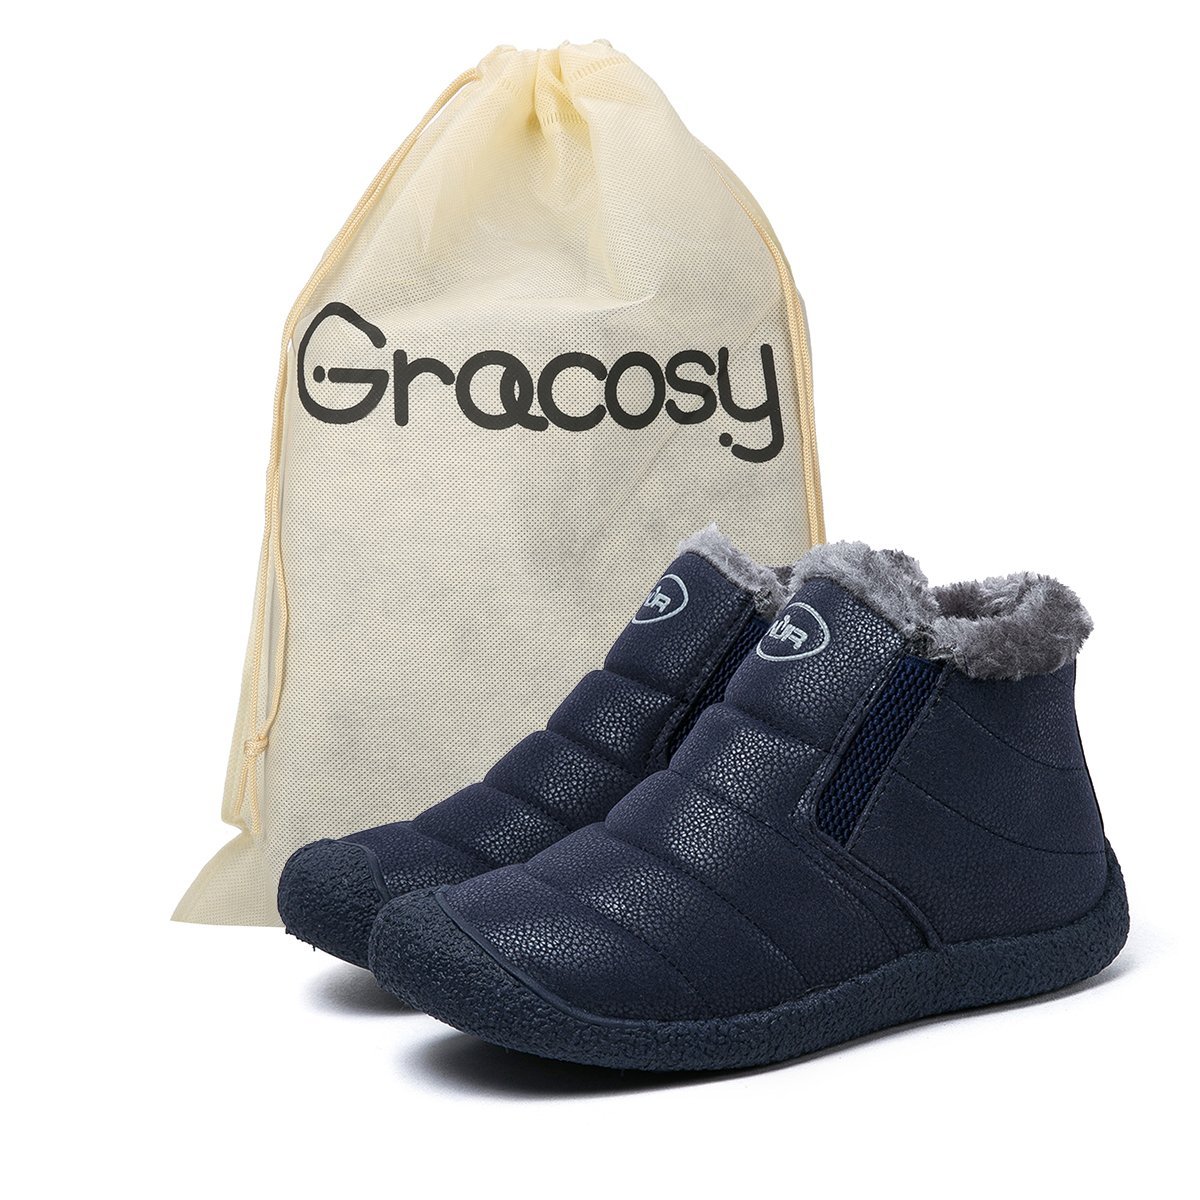 Gracosy Snow Boots, Winter Outdoor Slip On Ankle Snow Booties With Fur Lined, Unisex B075YYMTVN Tag 39|Blue